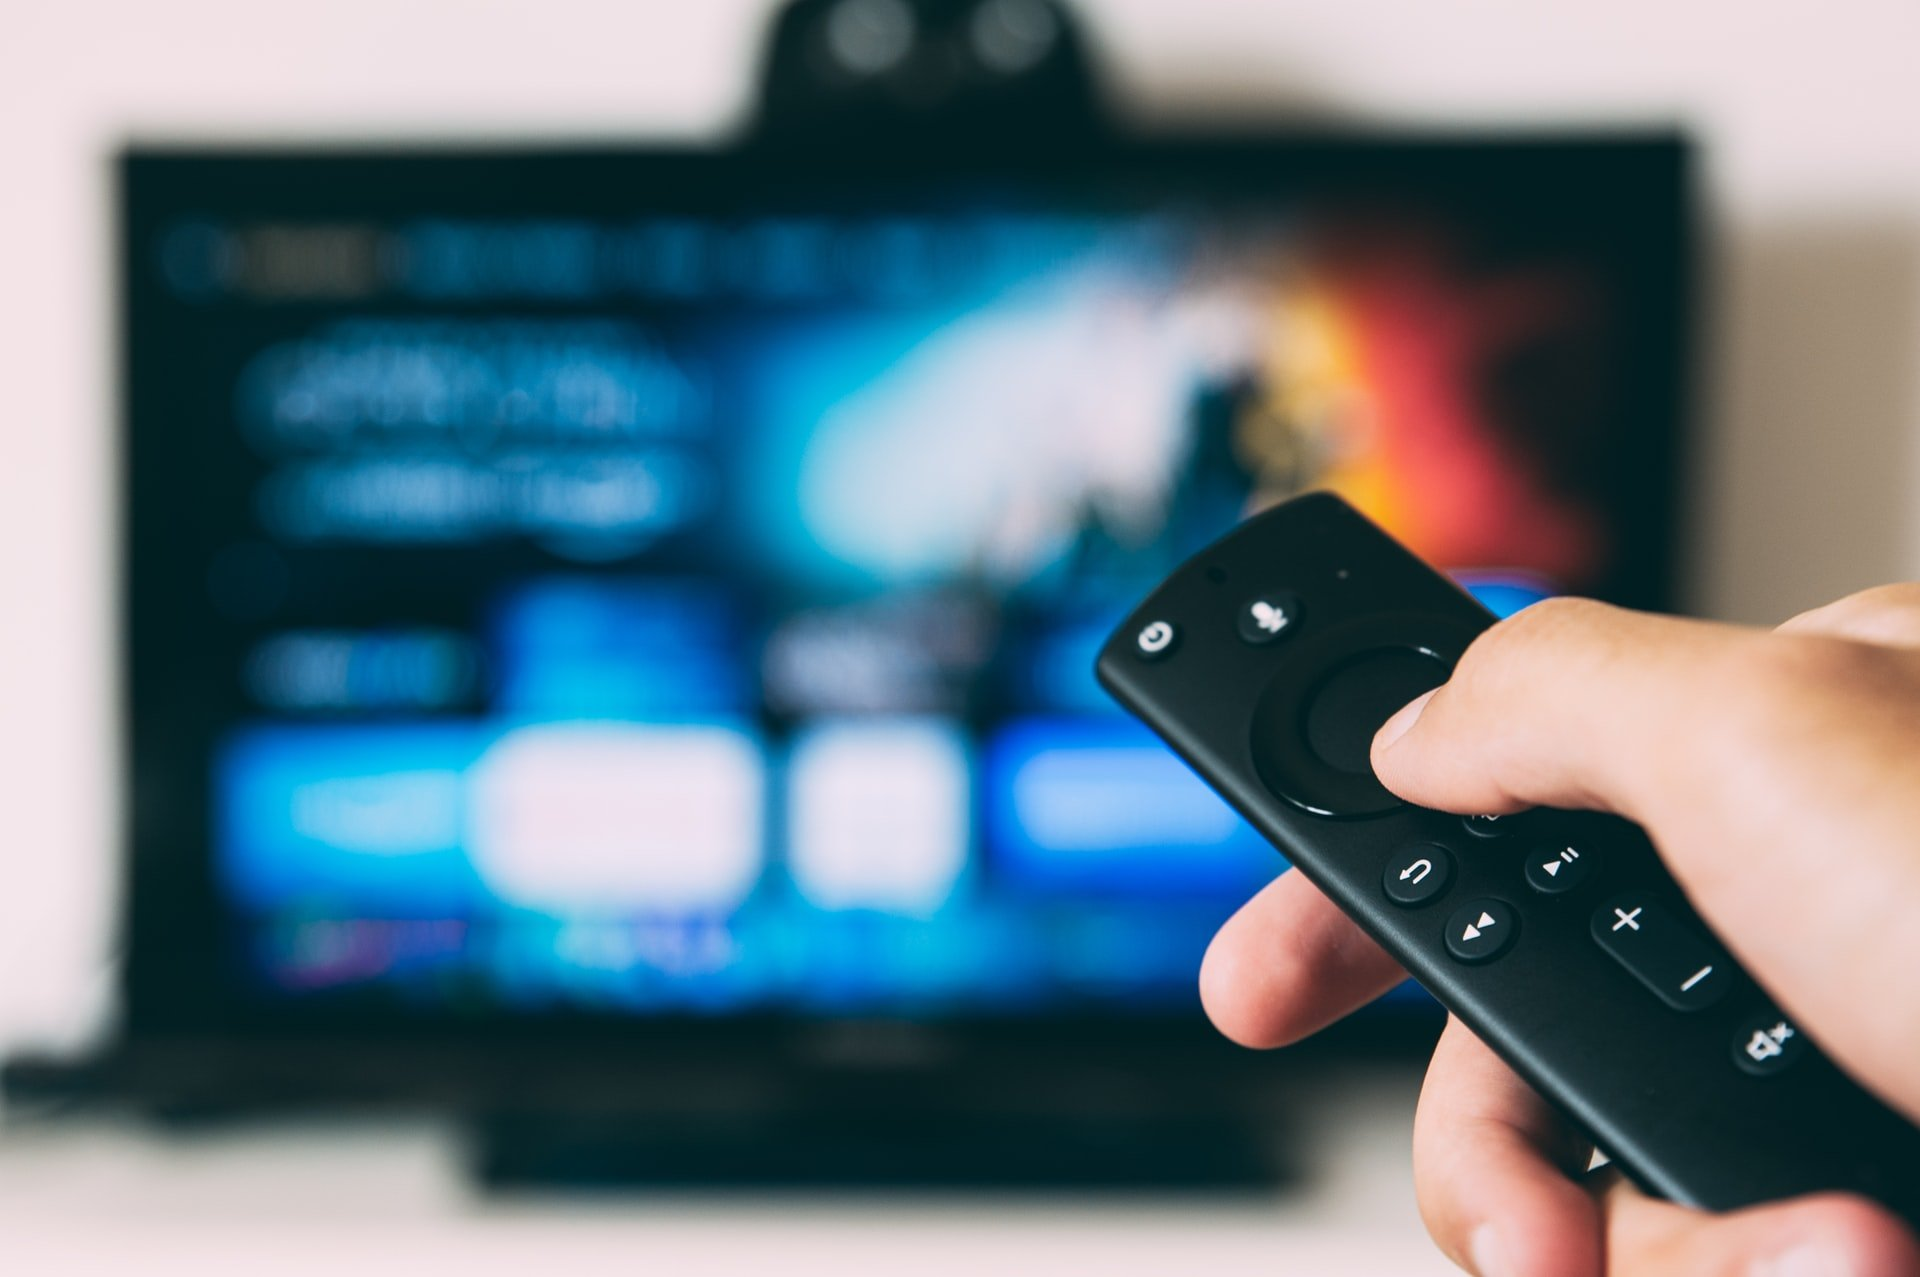 How to Install Eternal TV IPTV on the Fire TV Stick or Kodi